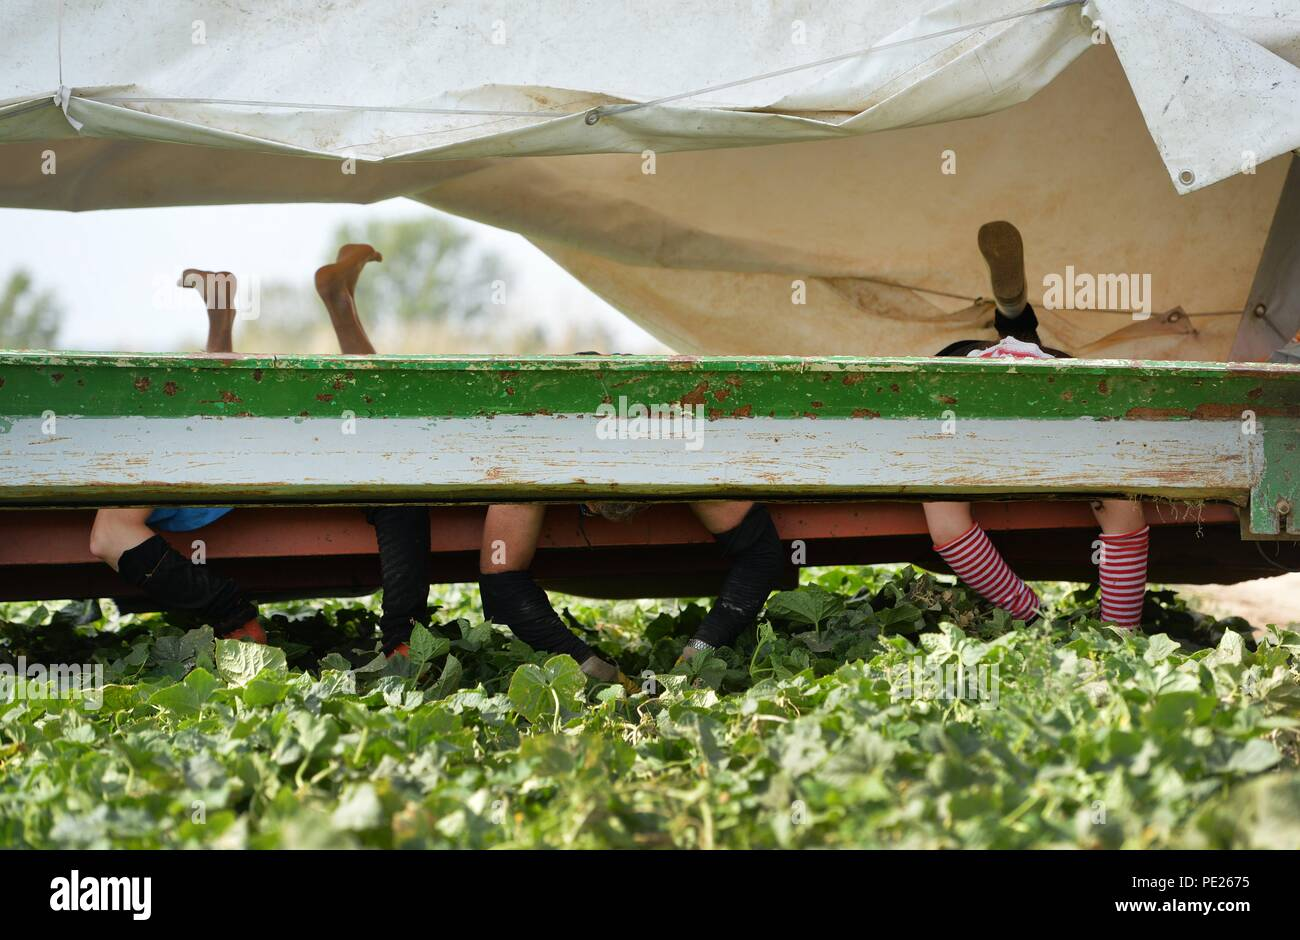 Niederdorla, Germany. 09th Aug, 2018. Lying on their stomachs and driving backwards on the 'Gurkenflieger' tractor, Polish helpers harvest cucumbers on fields in the Unstrut-Hainich district. Credit: Frank May/dpa/Alamy Live News - Stock Image